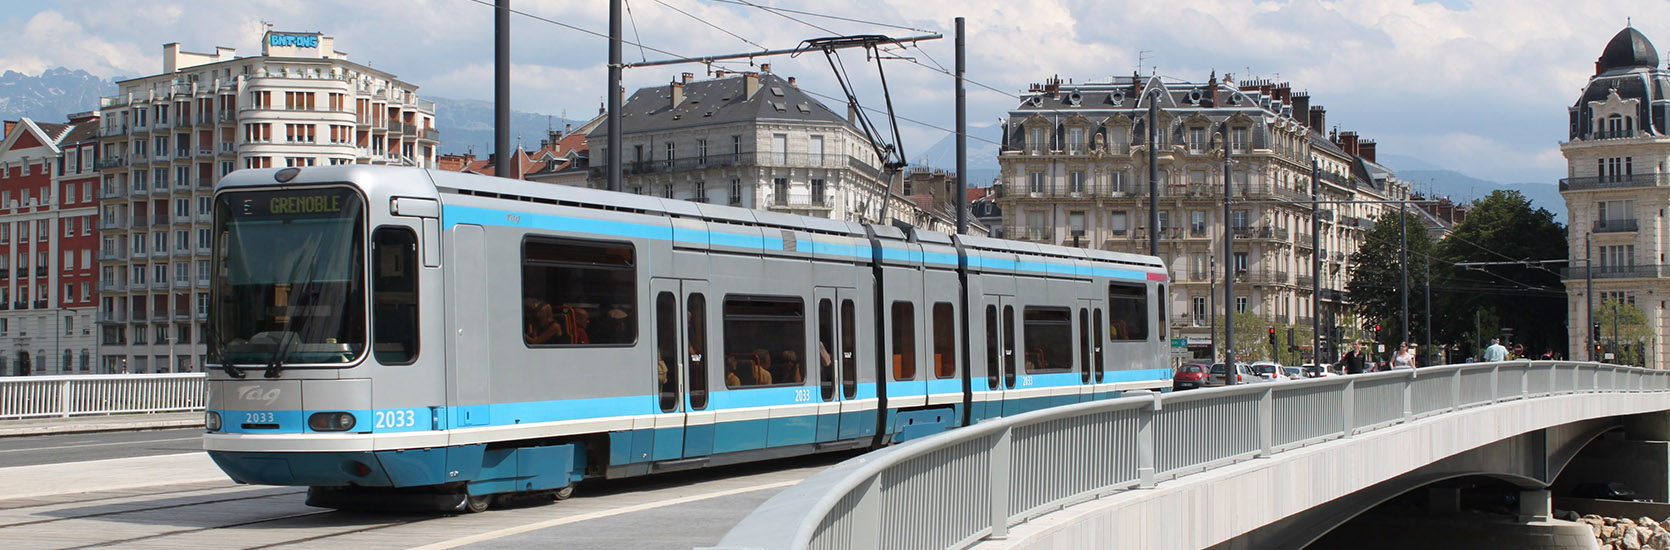 slider-3-tram-grenoble